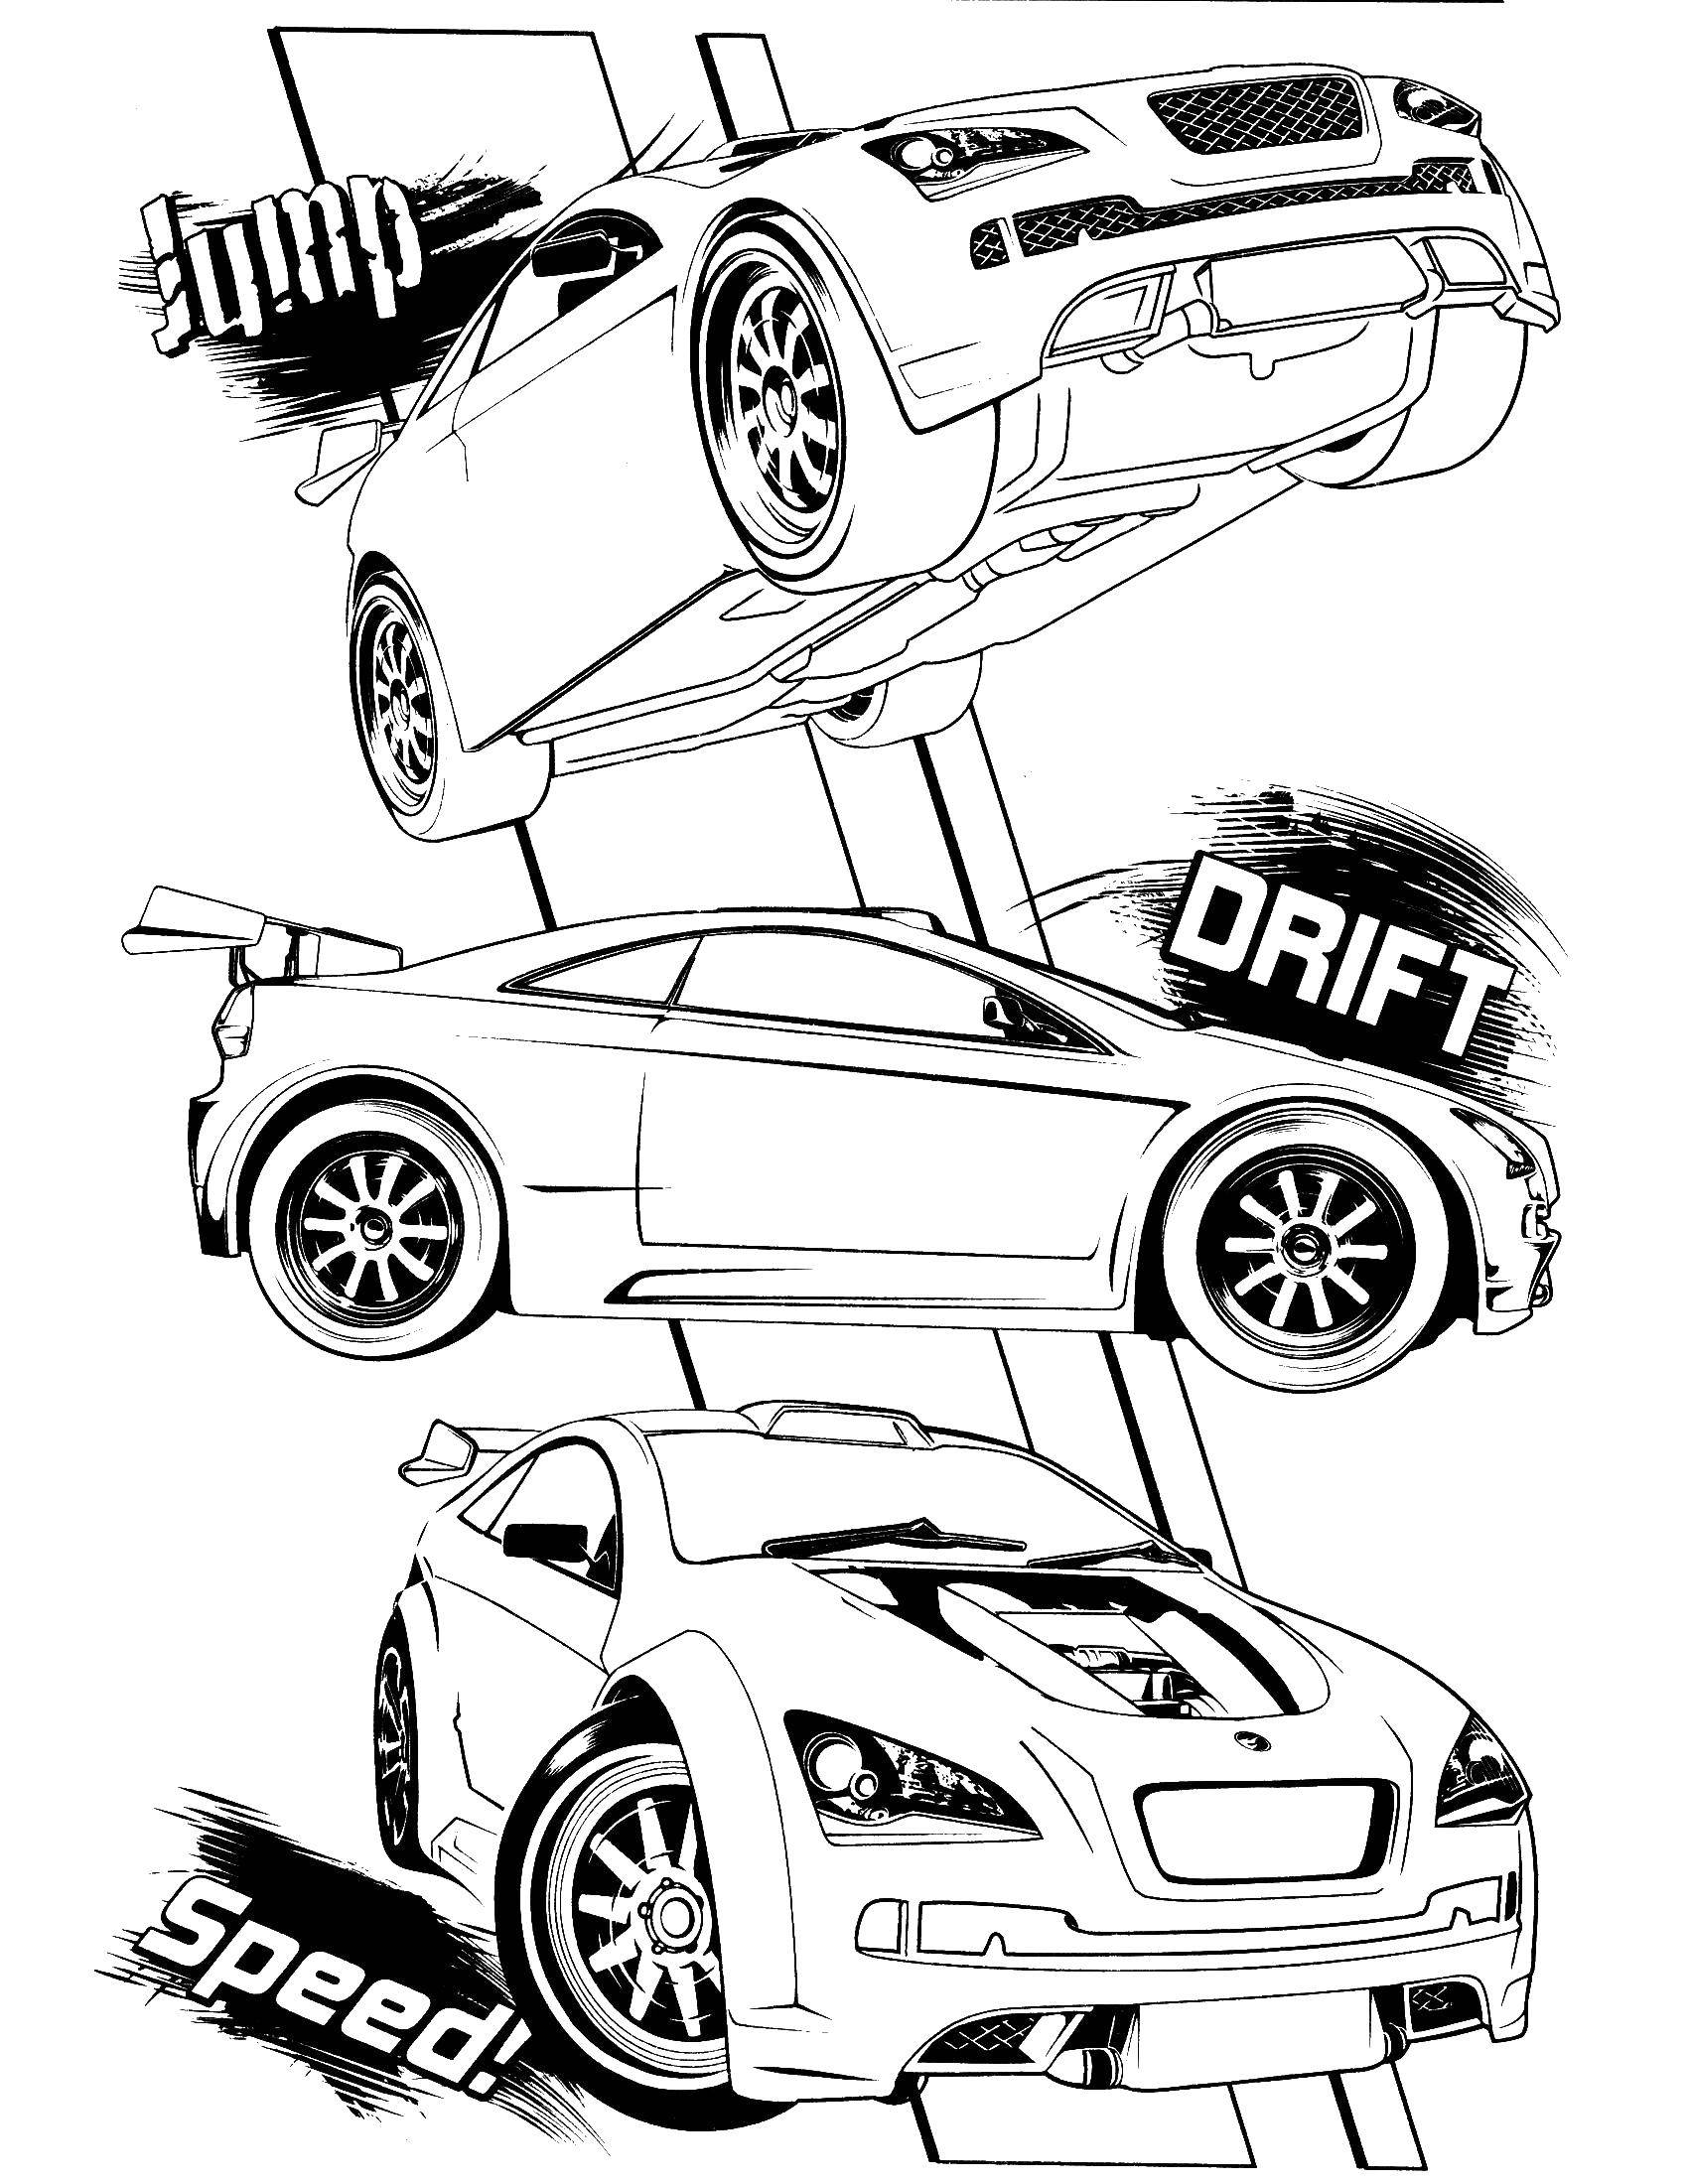 Coloring Cars and drift Download ,car, drift, speed, jump,.  Print